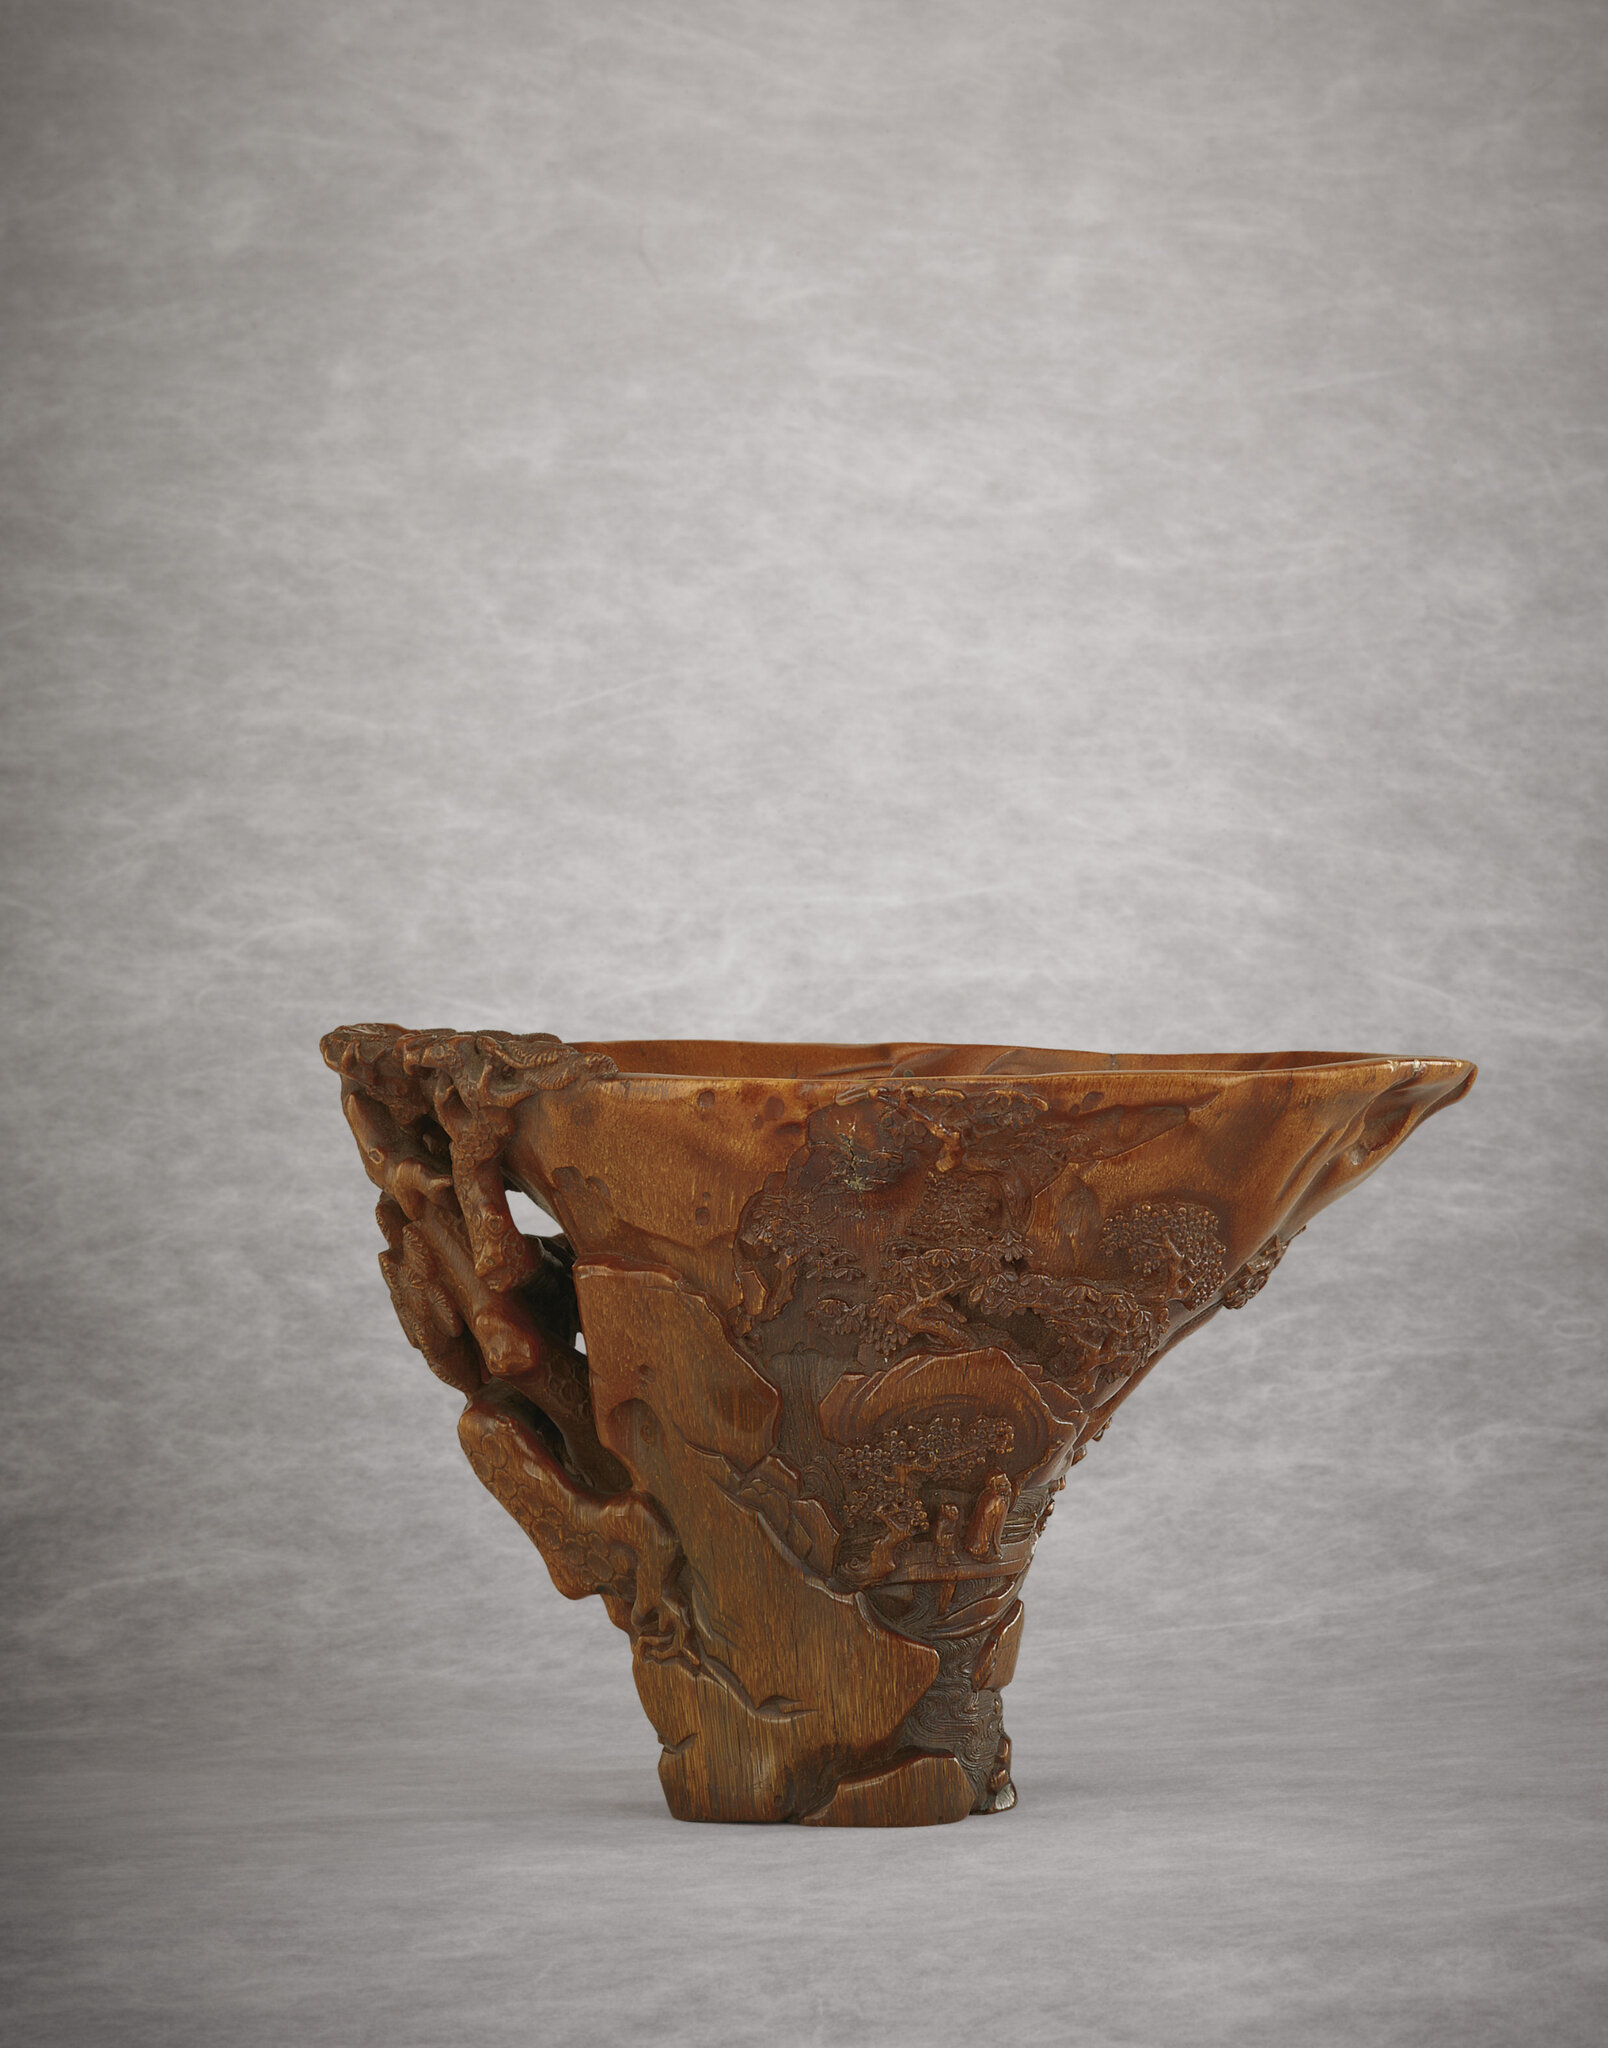 An exceptionally well-carved rhinoceros horn libation cup, Qing dynasty, 18th century